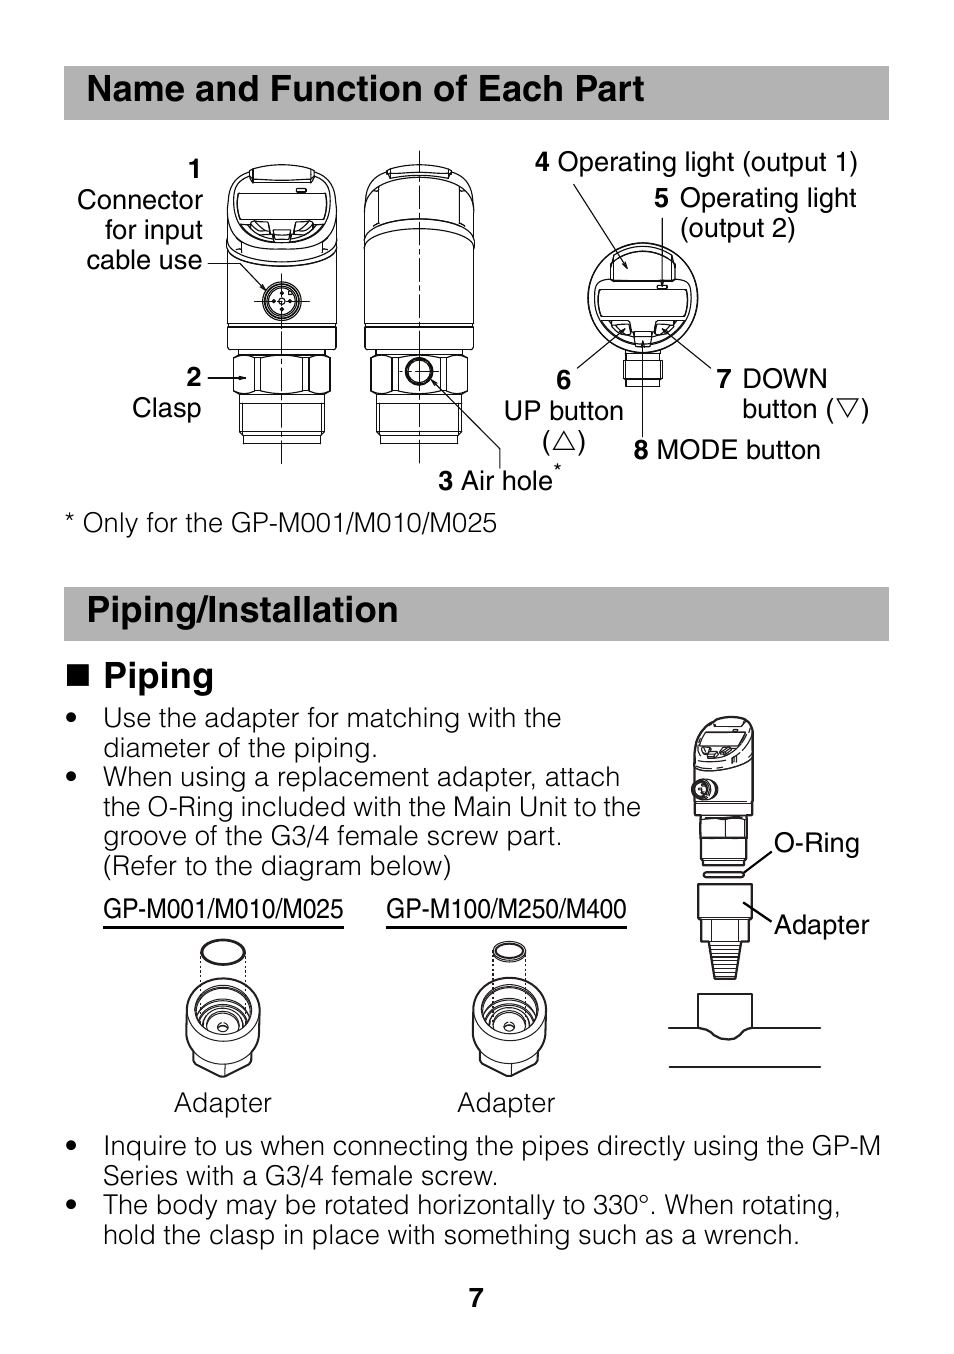 medium resolution of name and function of each part piping installation piping keyence gp m series user manual page 7 28